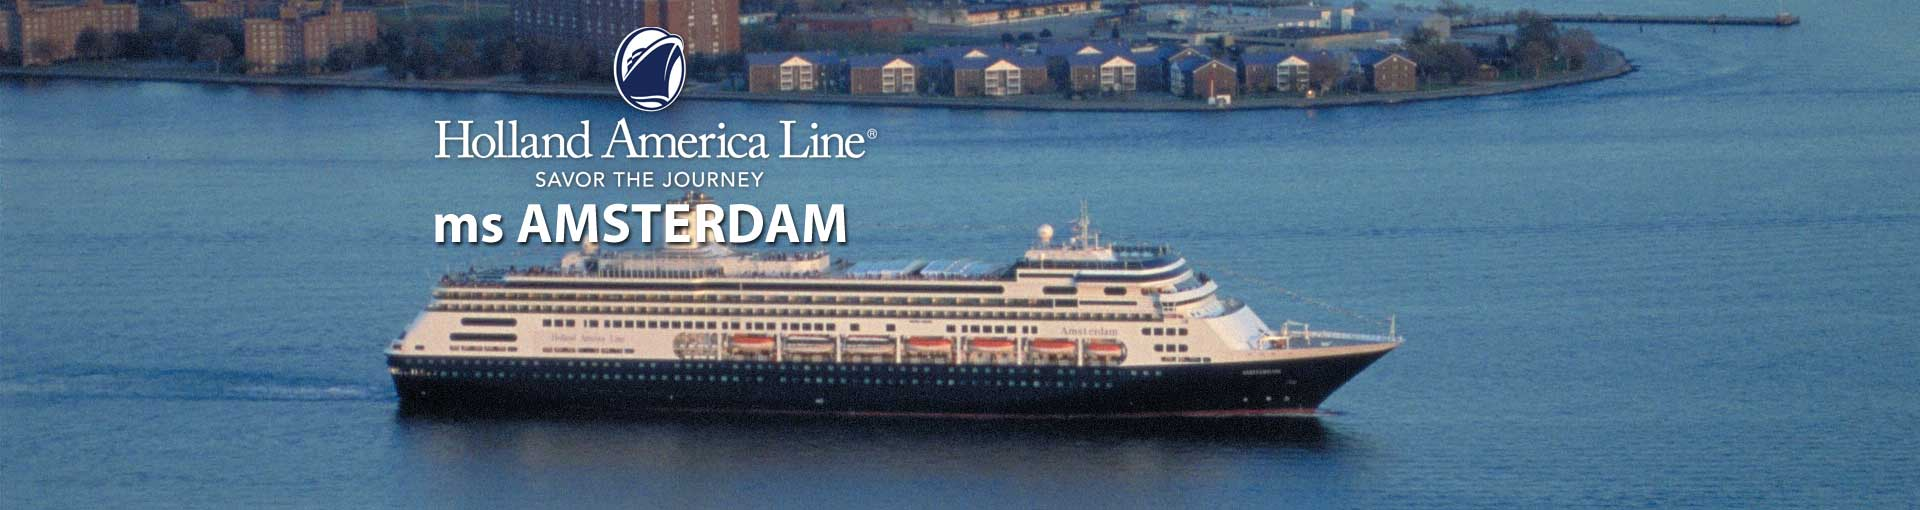 Holland americas ms amsterdam cruise ship 2017 and 2018 ms holland america ms amsterdam cruise ship baanklon Gallery